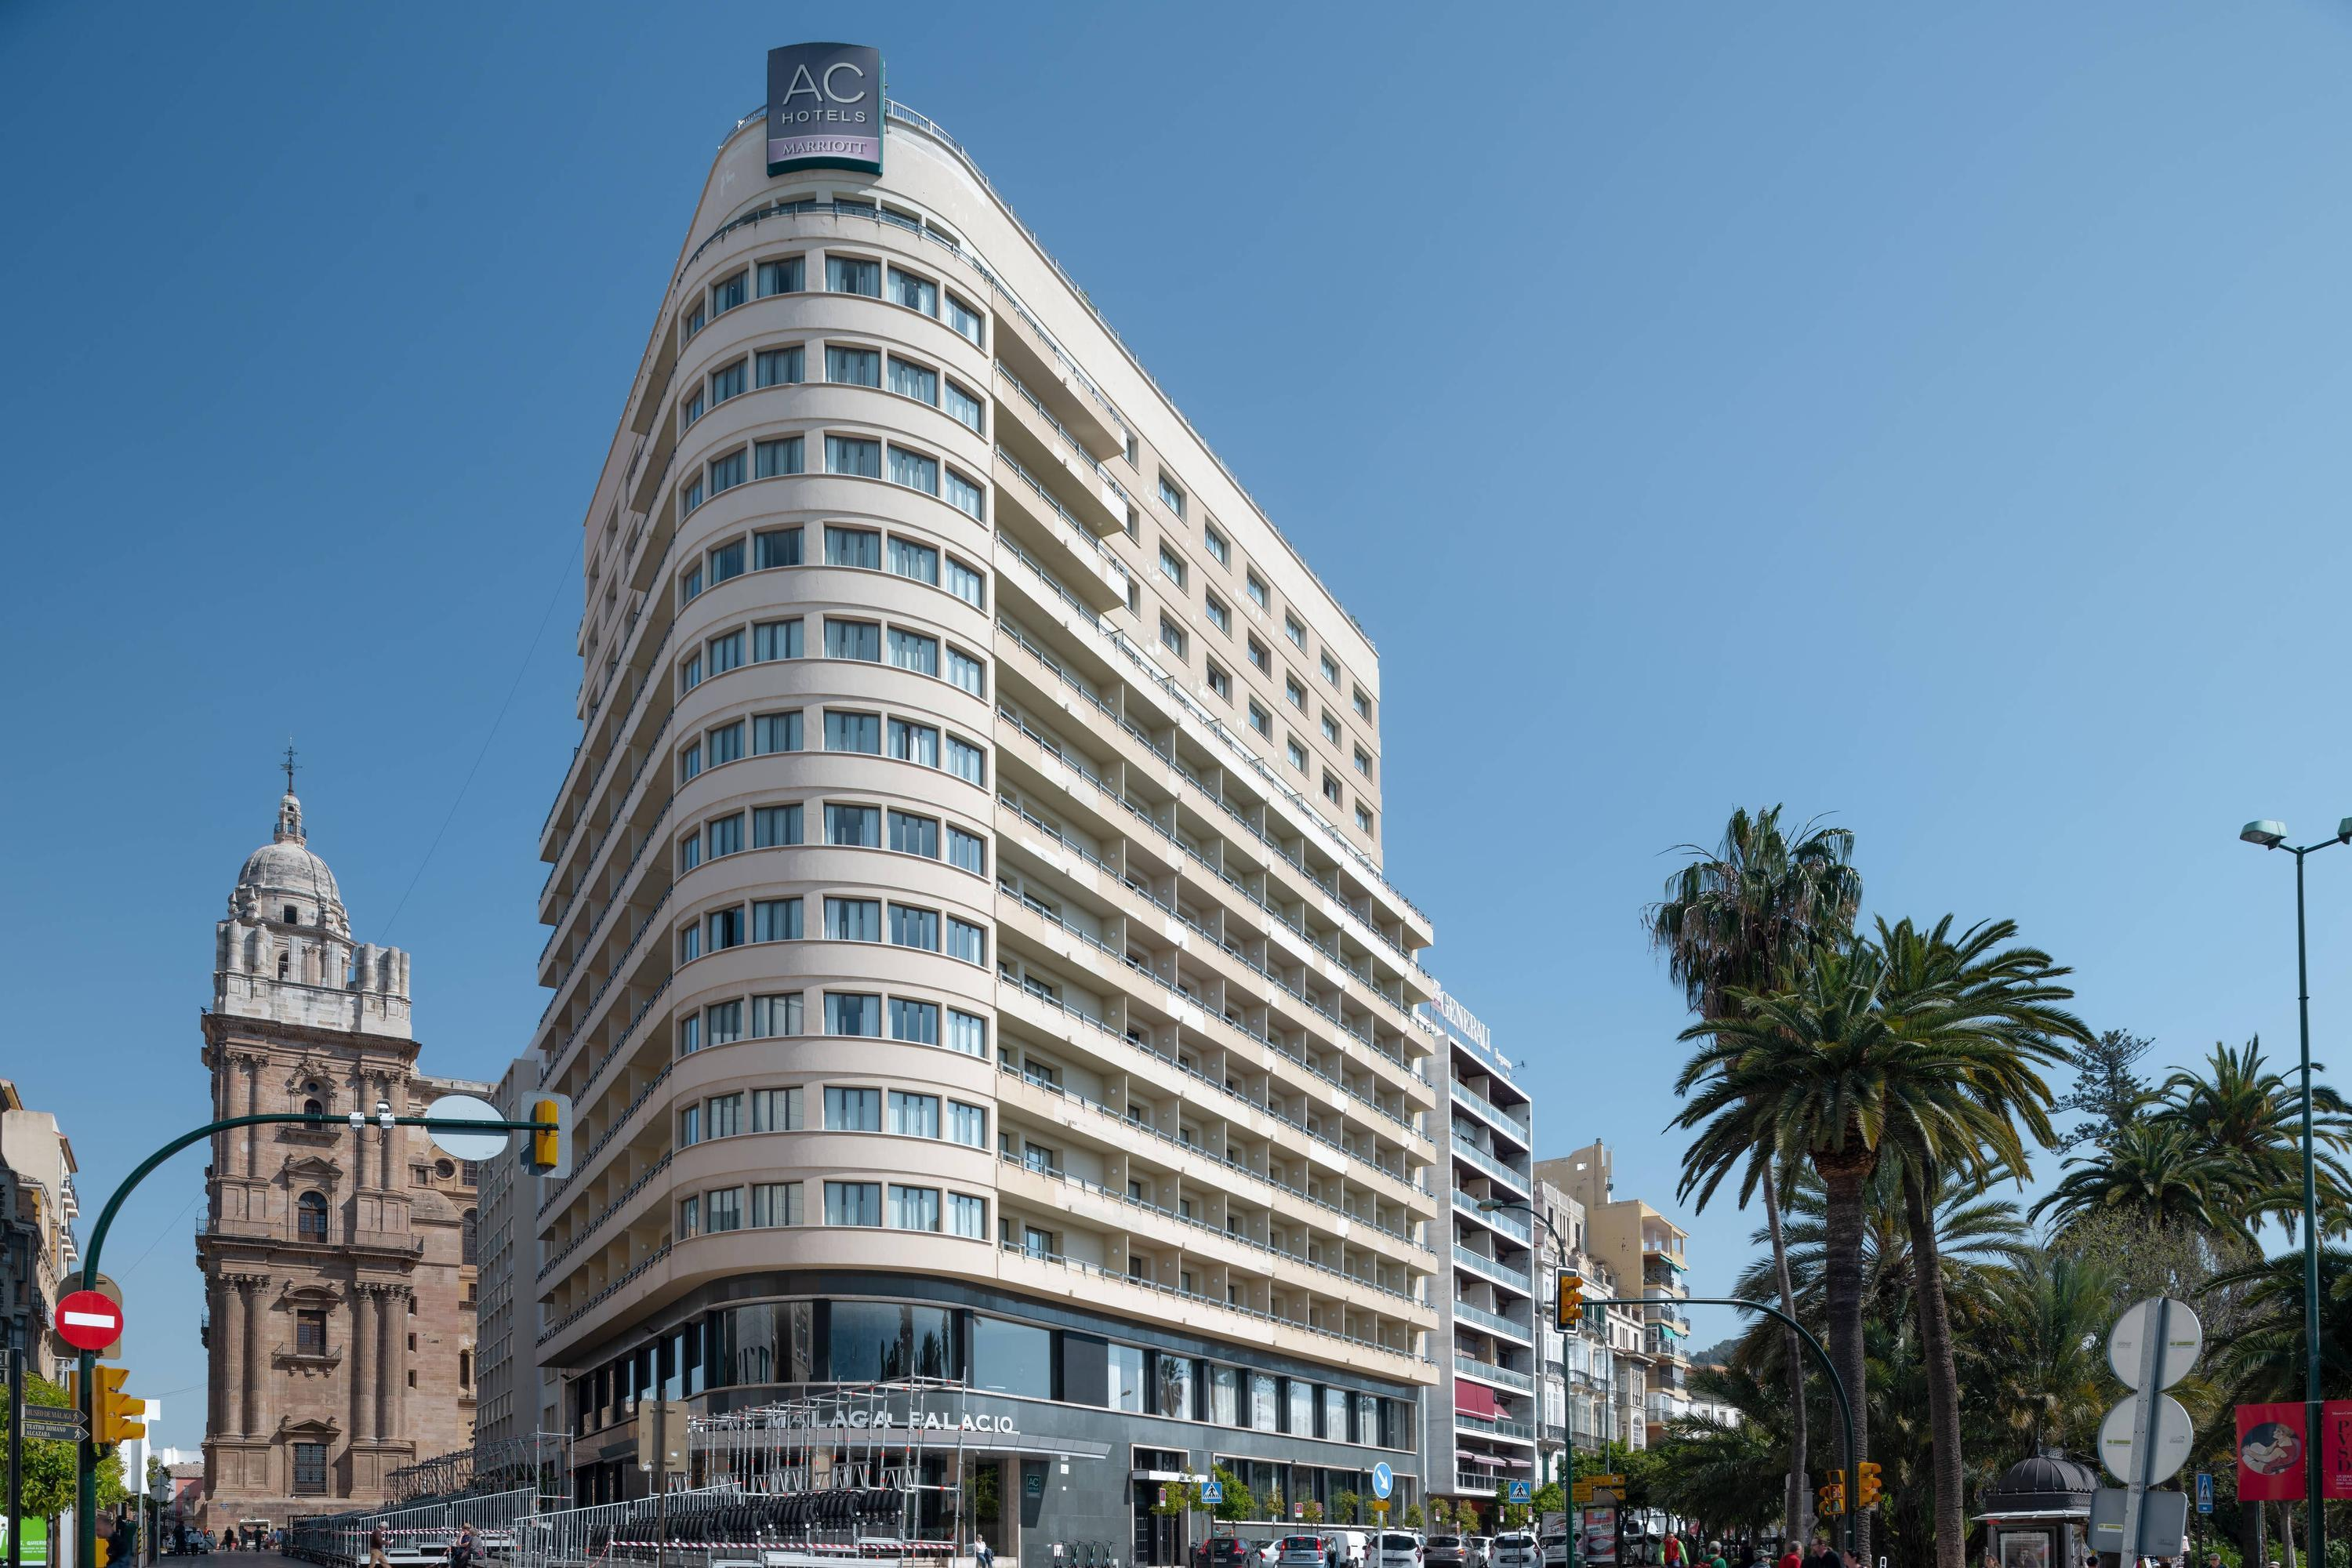 AC Hotel Málaga Palacio by Marriott